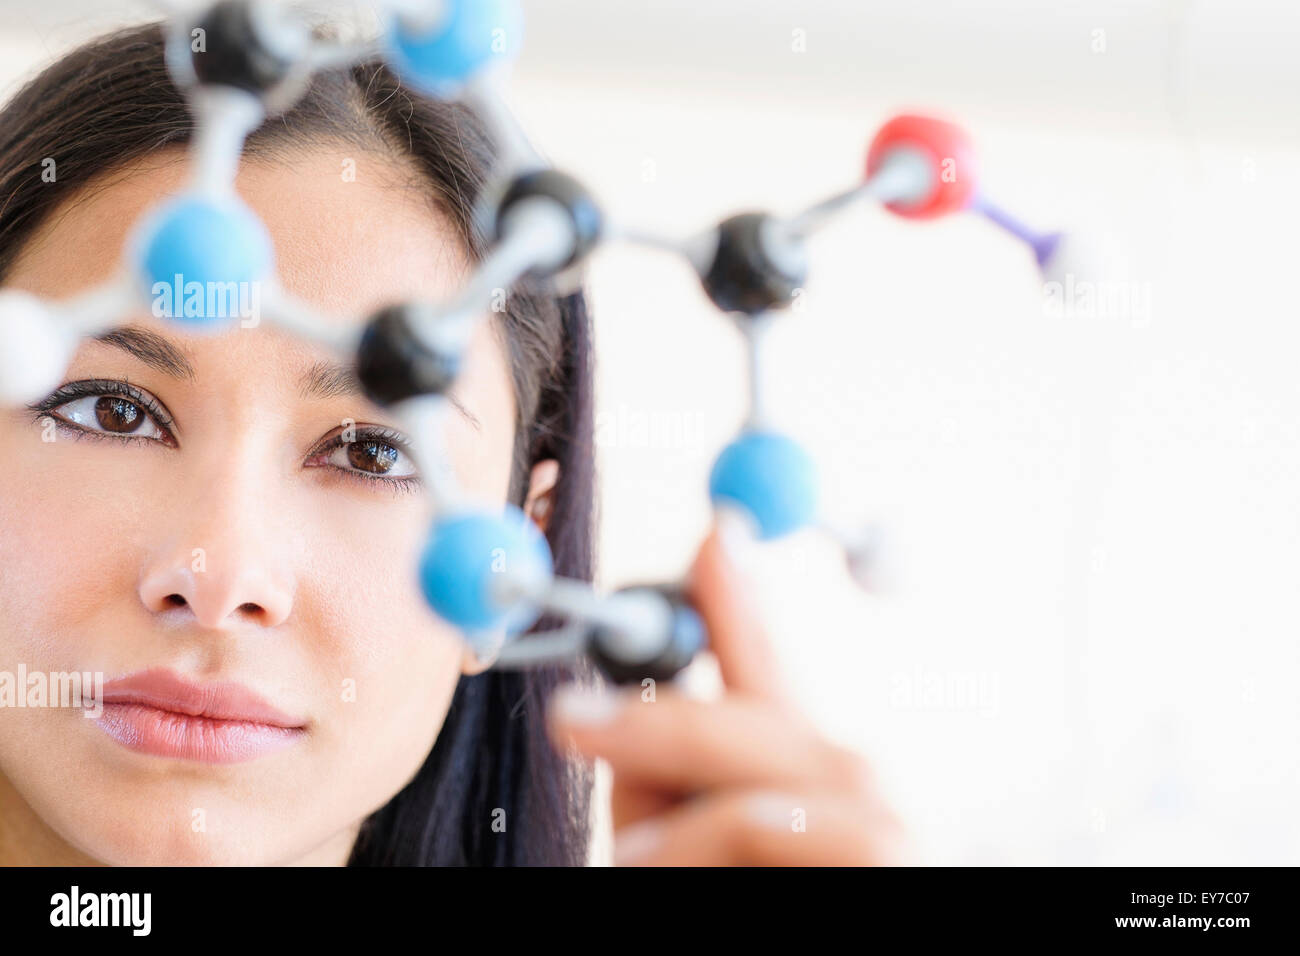 Woman working in laboratory Photo Stock